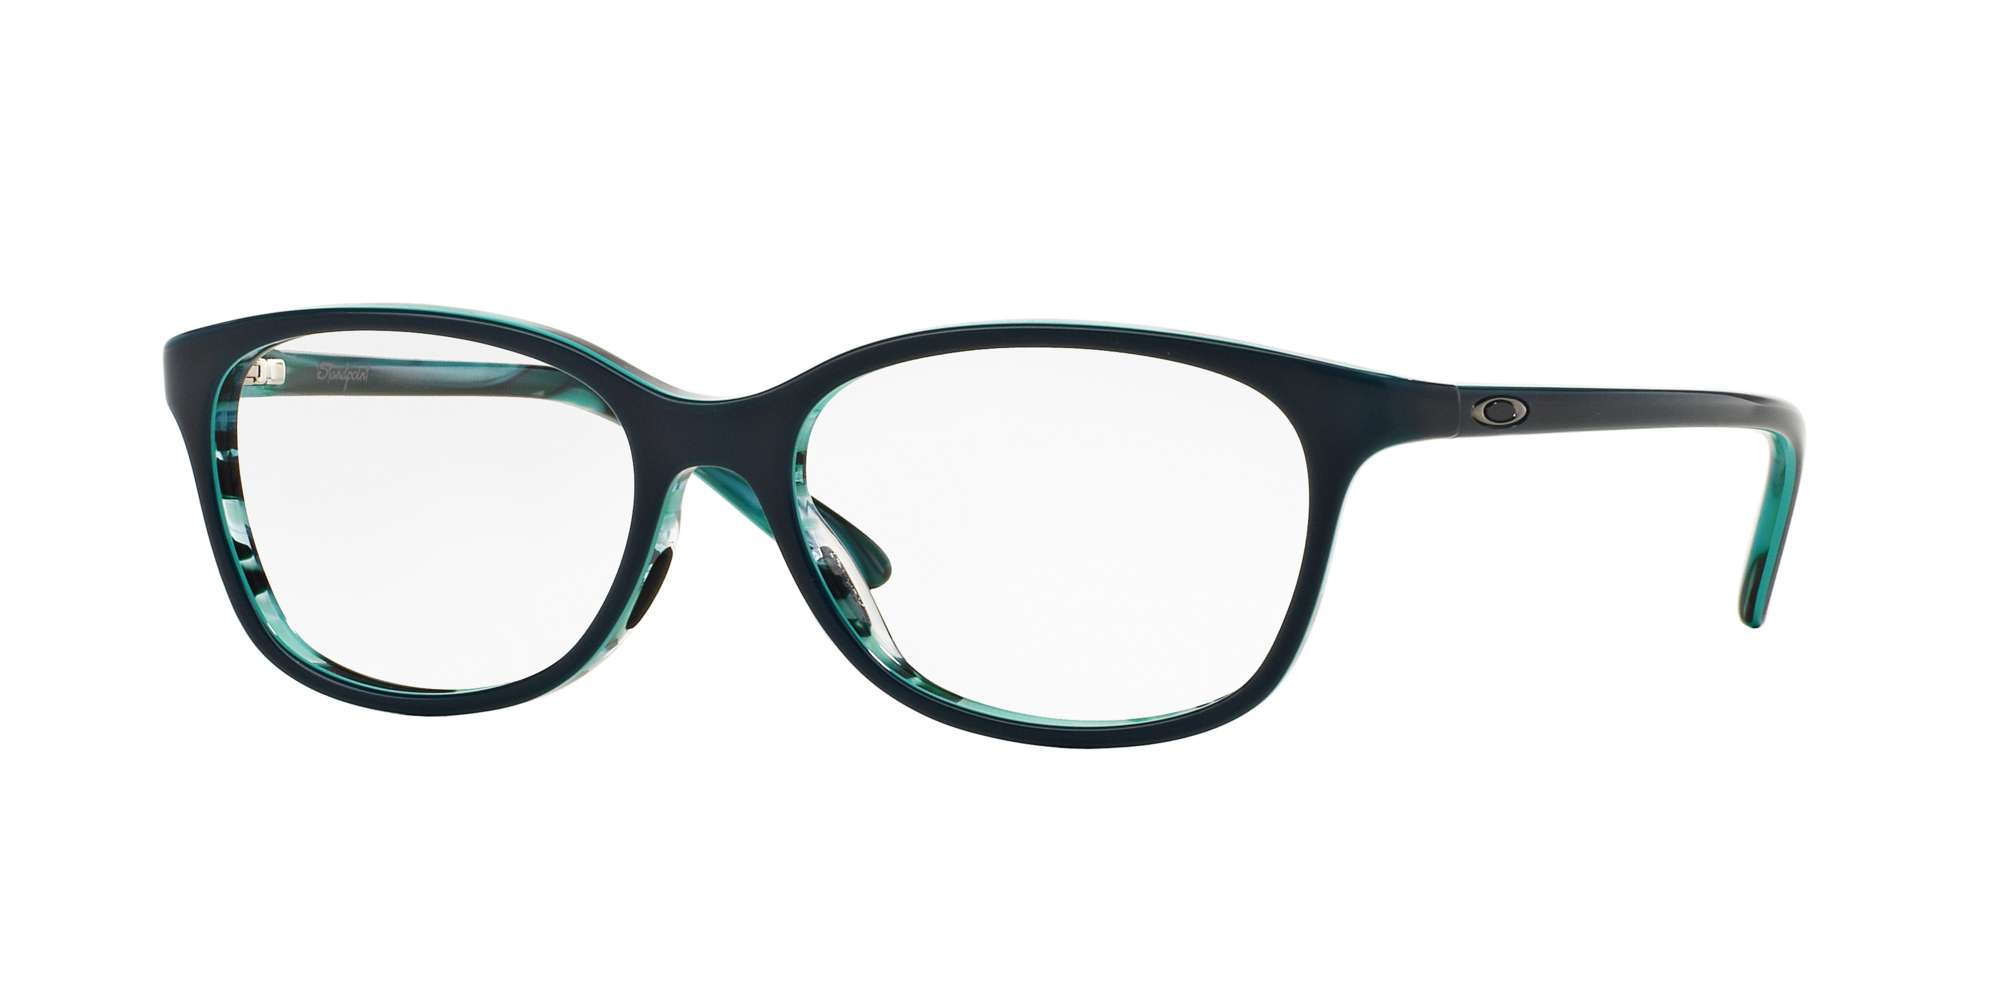 BANDED GREEN / CLEAR lenses